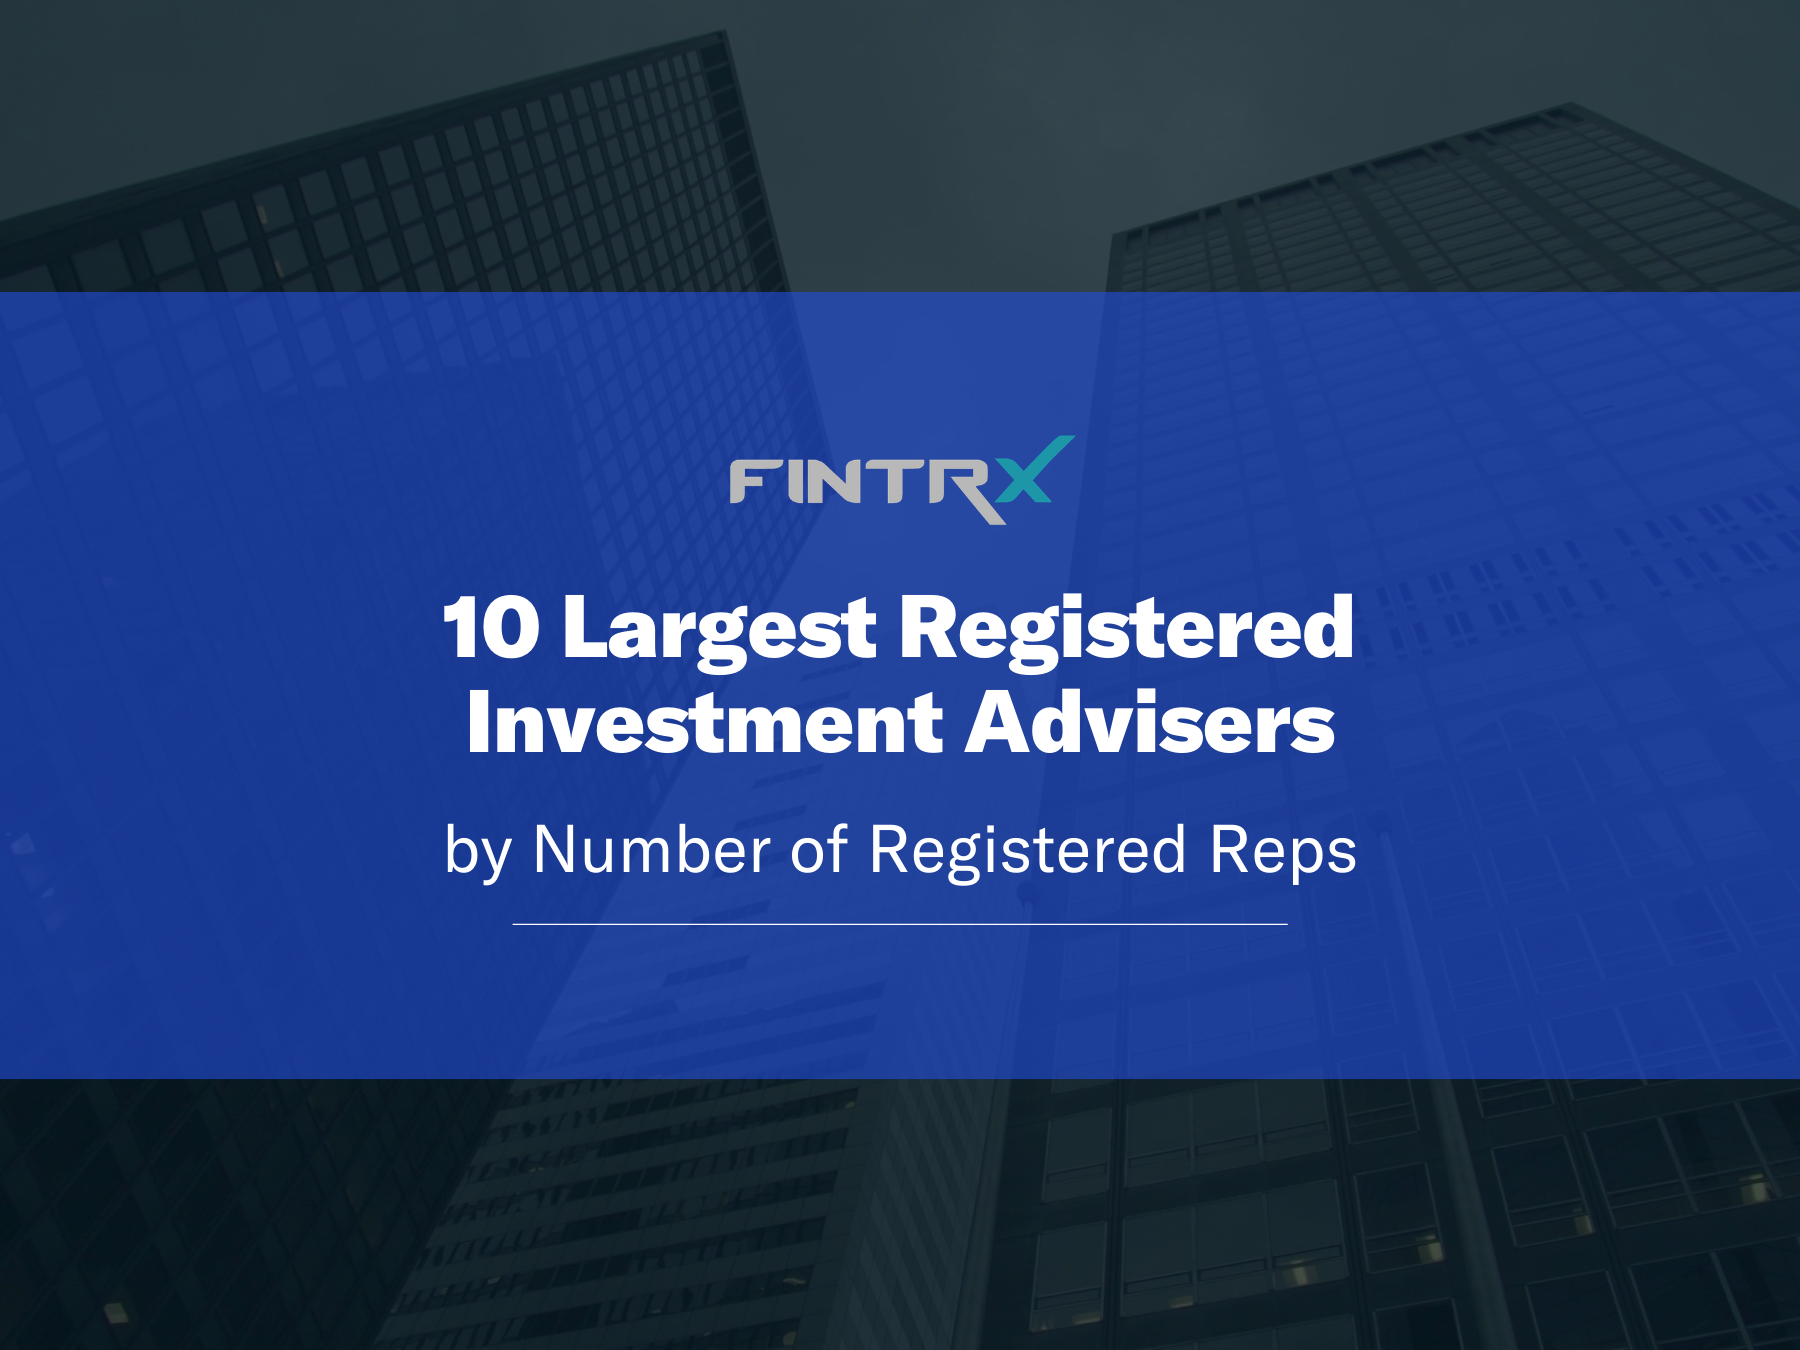 10 Largest RIAs by Number of Registered Investment Advisors